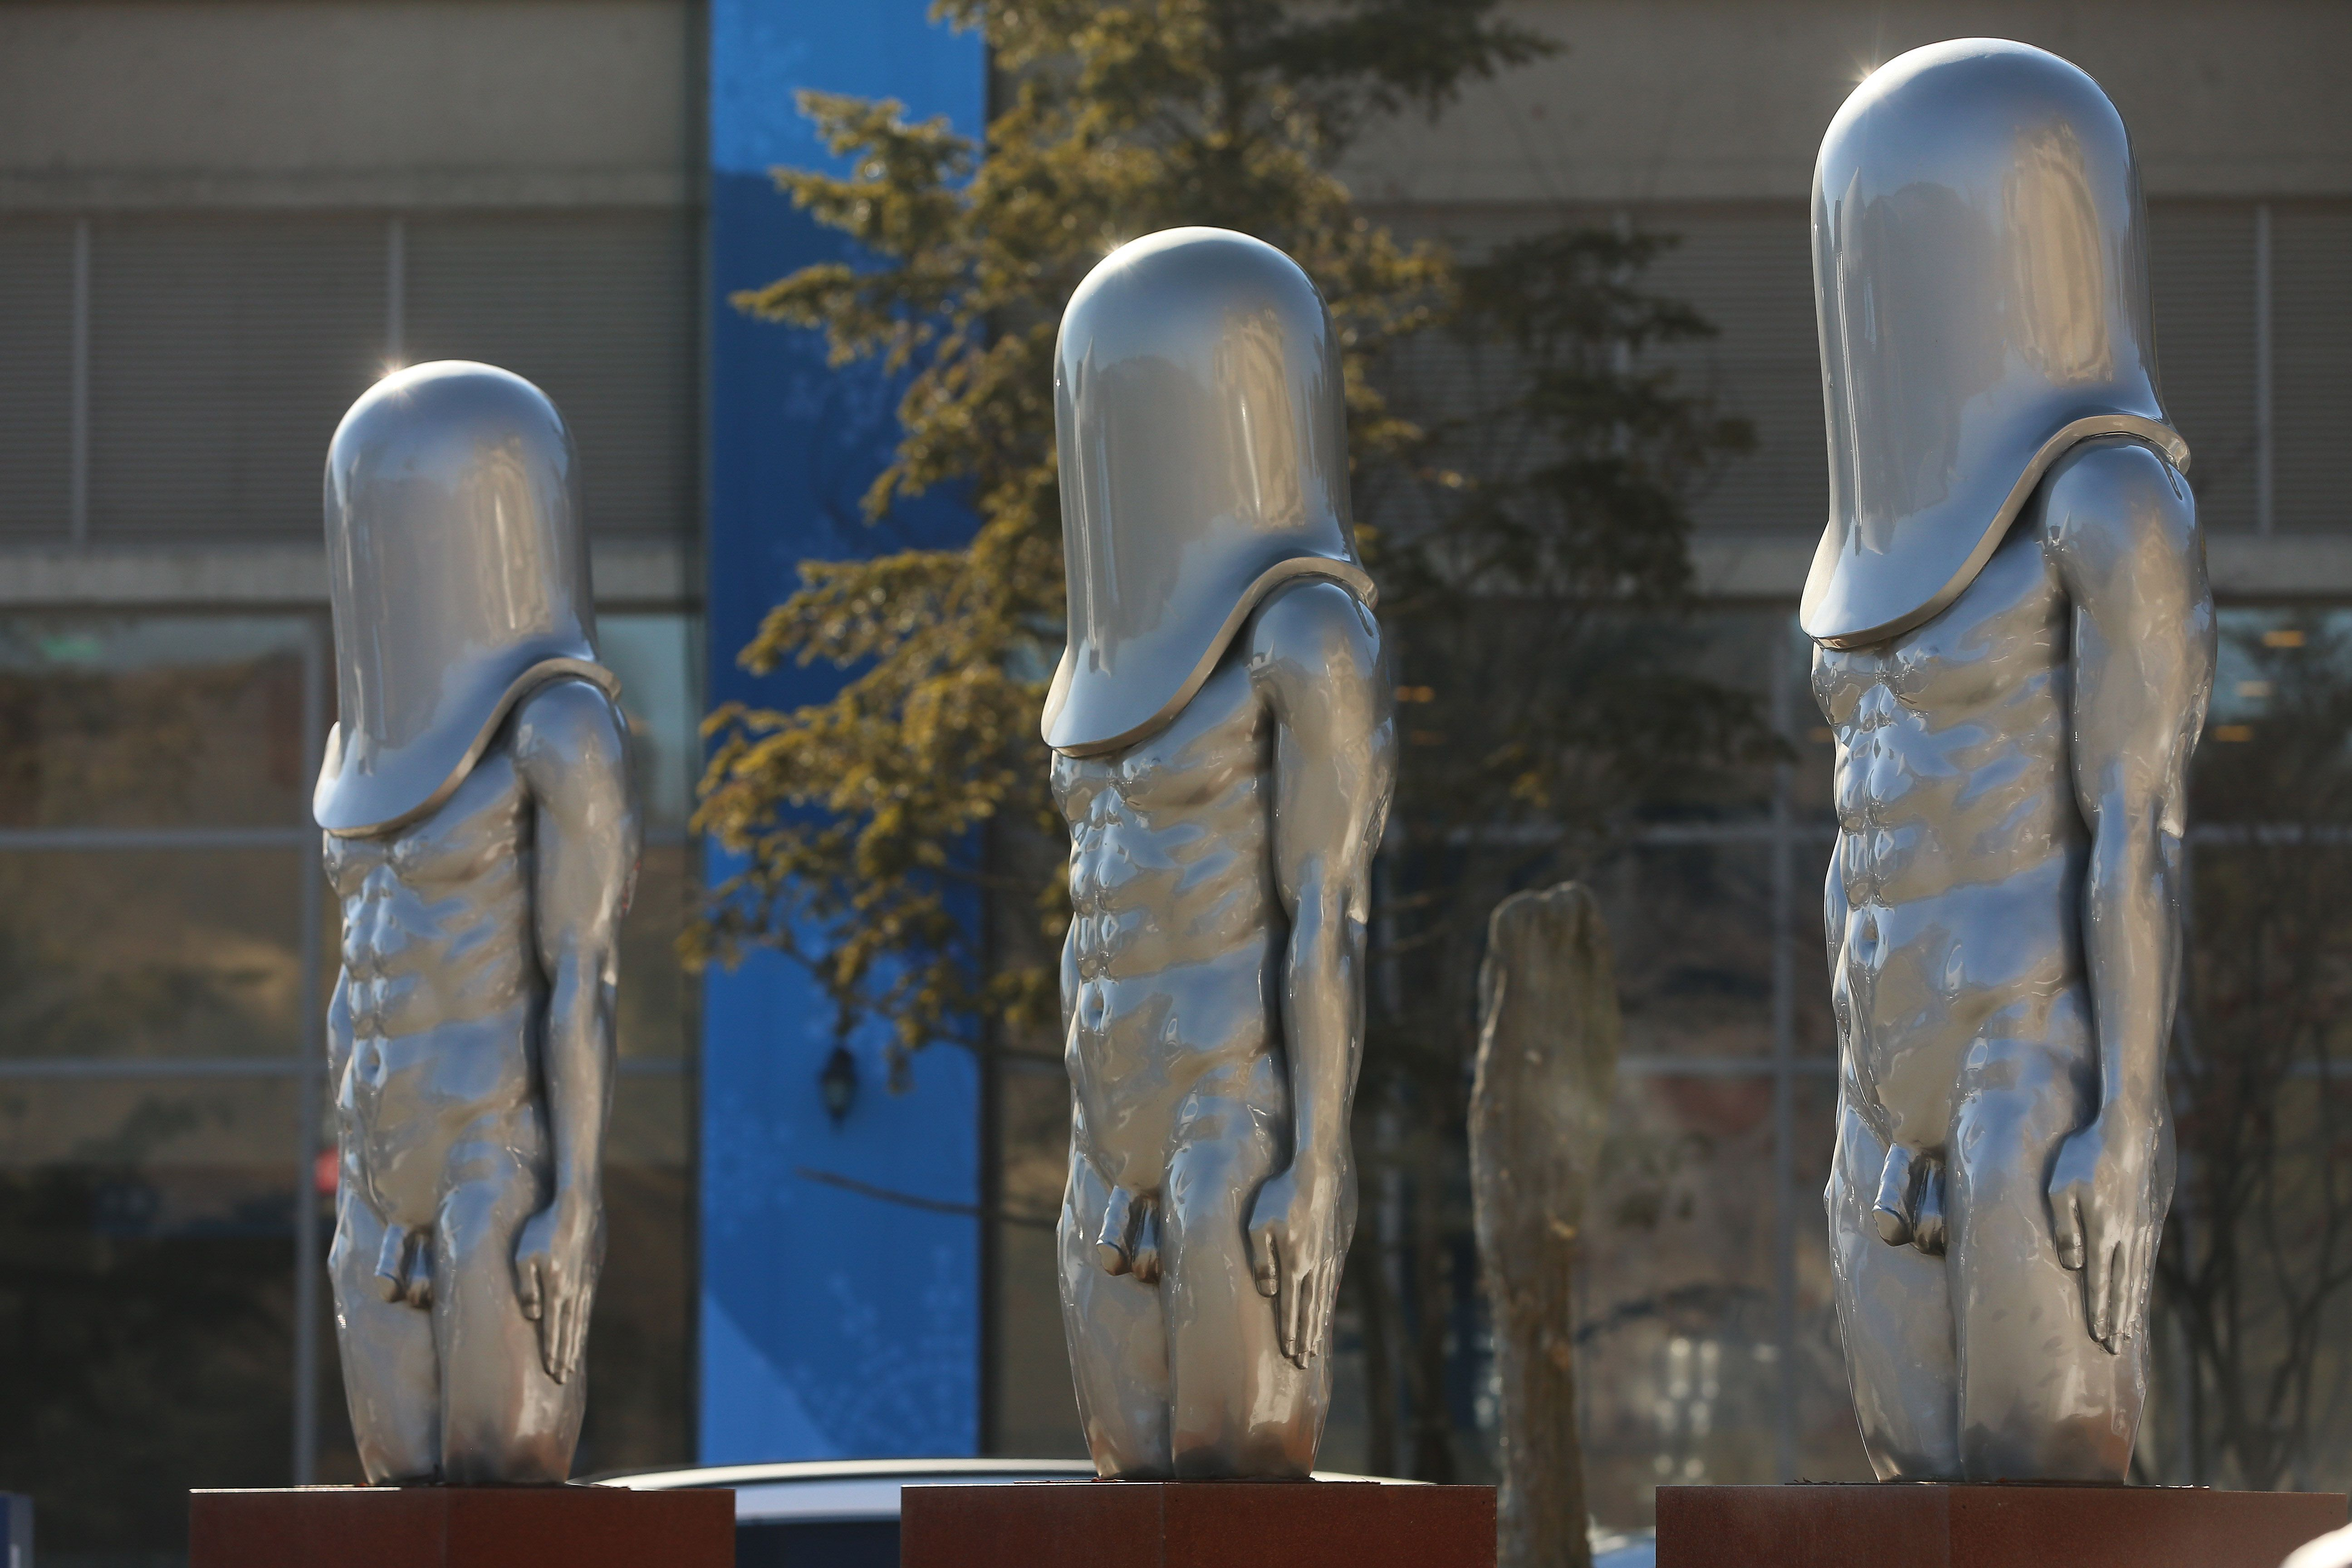 So, Uh, There Are 3 Very Prominent Penises on Display in the Olympic Village